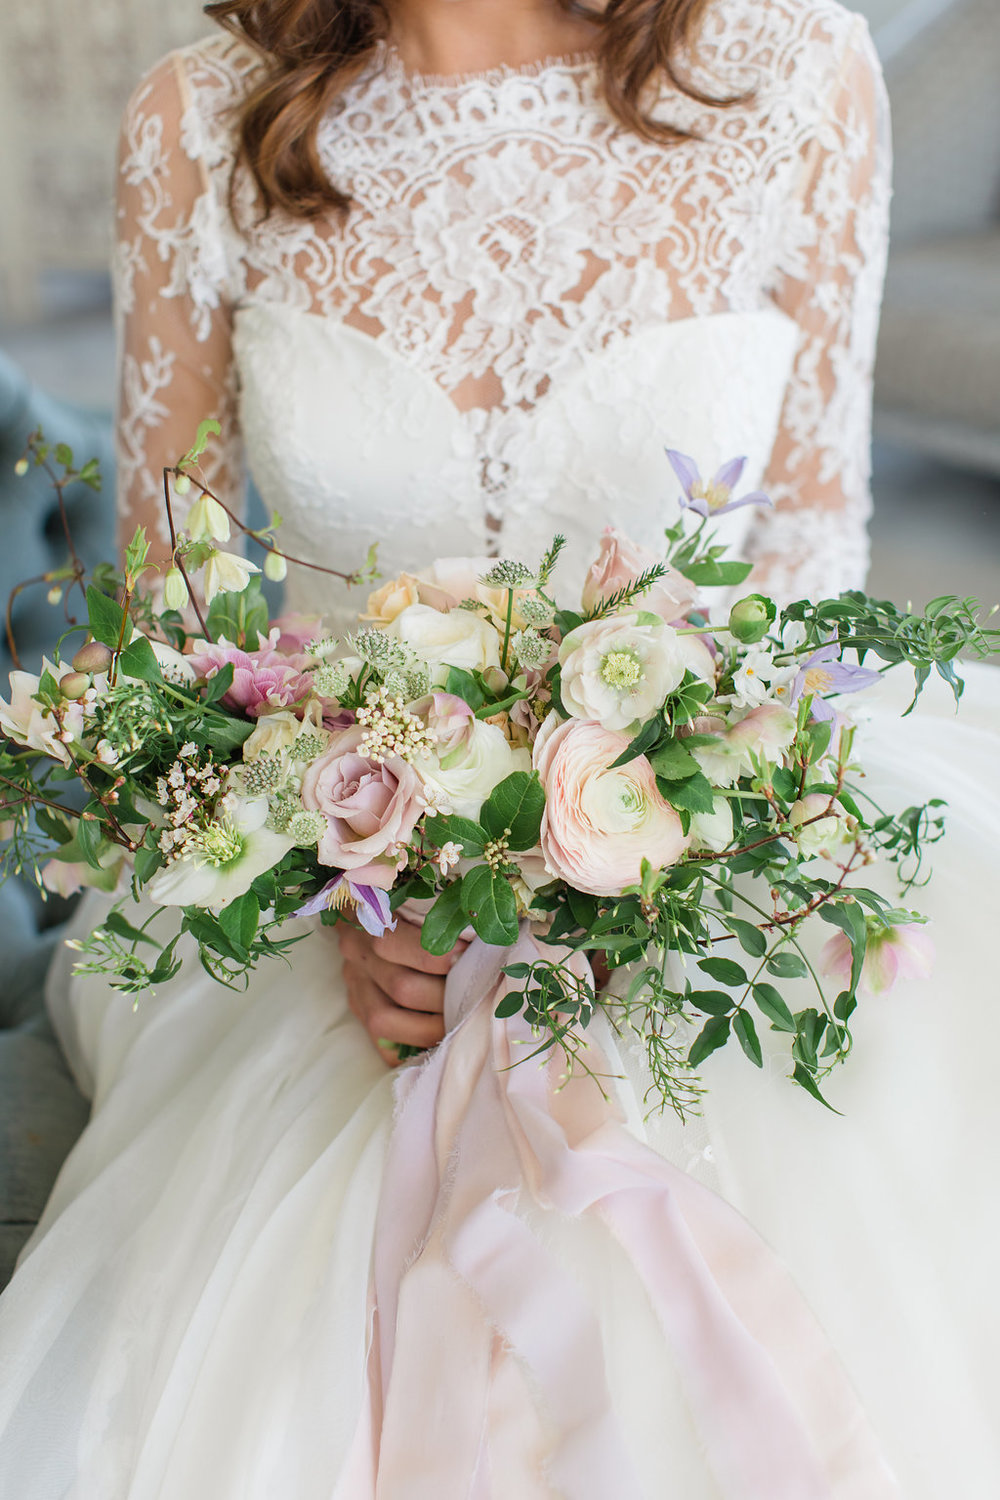 The Timeless Stylist-Elegant and Romantic Wedding Styling-Pastel Spring Wedding Bouquet